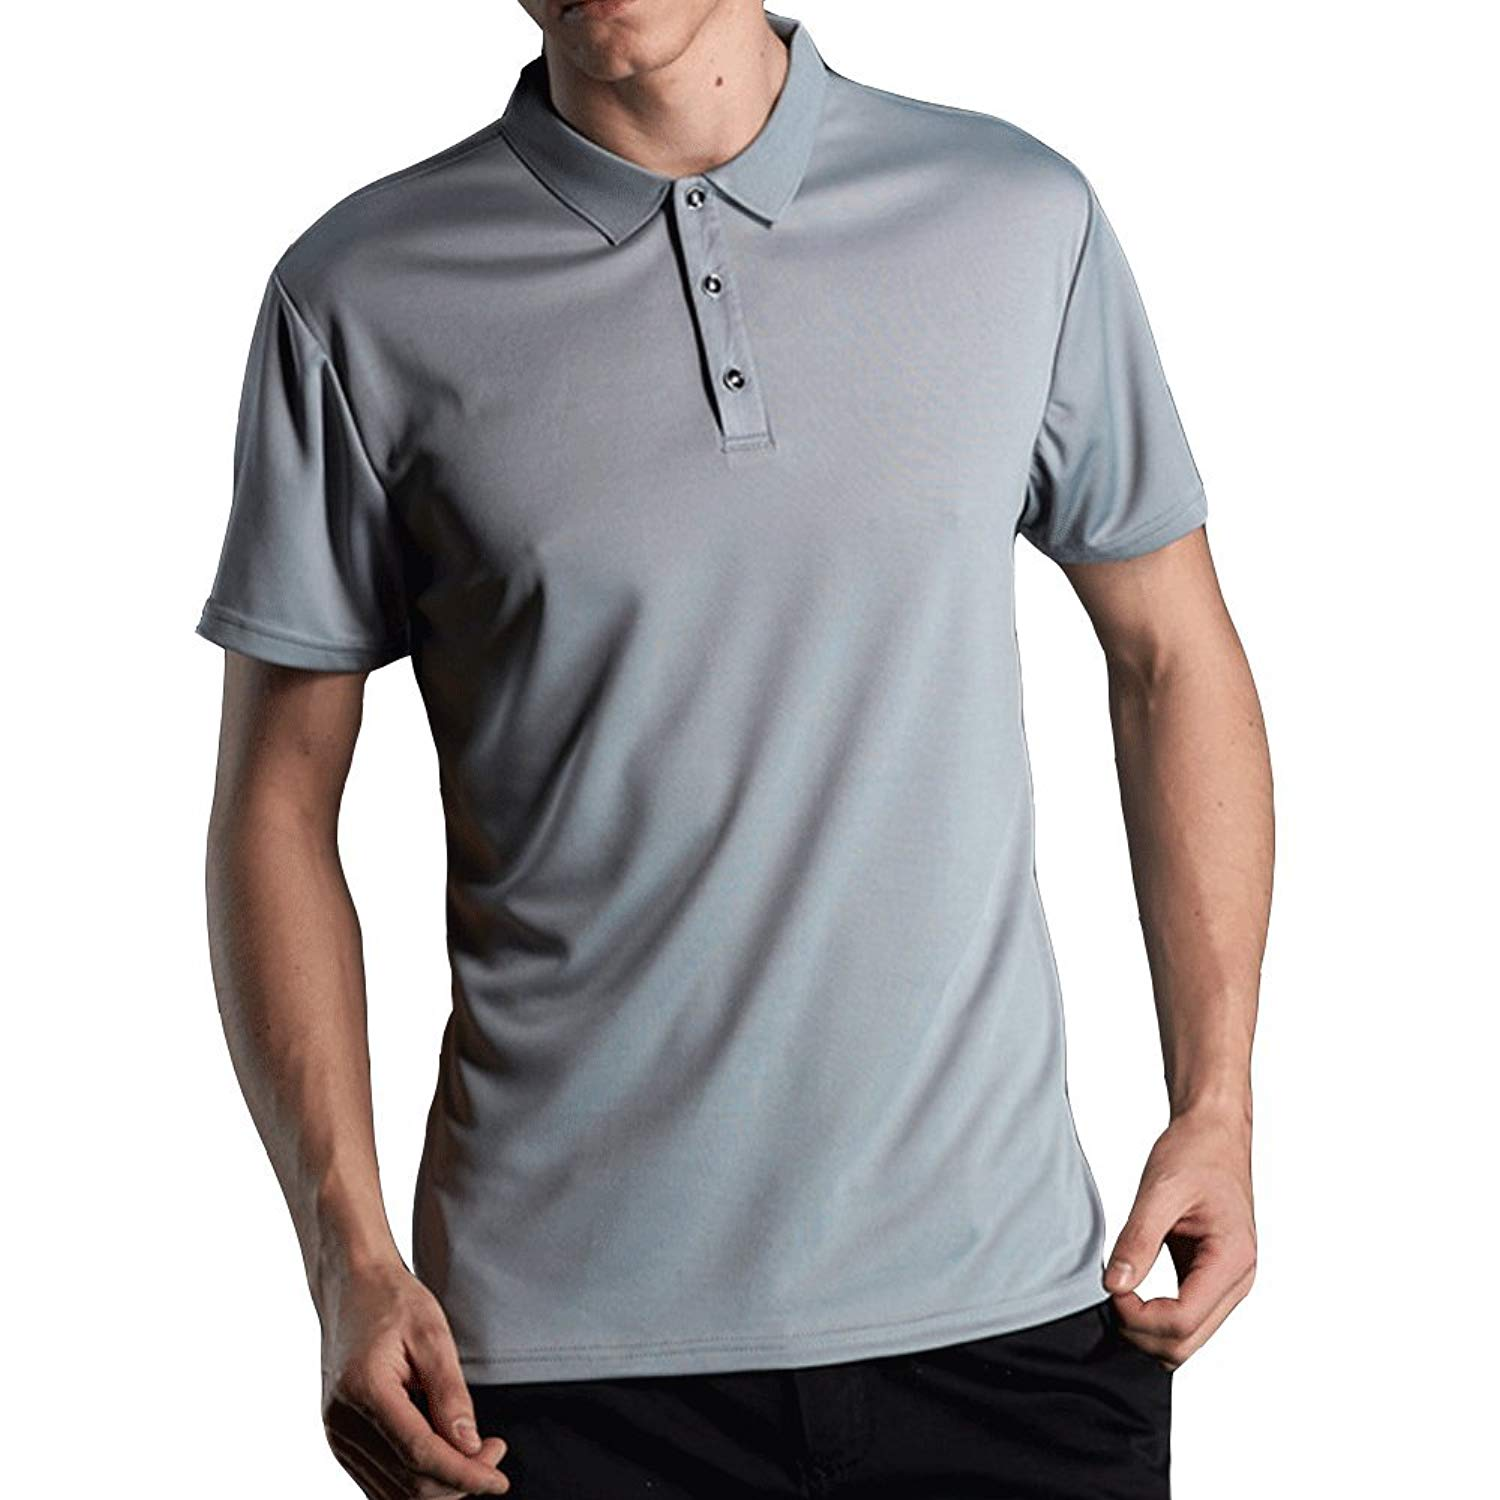 acf78b35 Get Quotations · EVERDESIGN Men's Short Sleeve Moisture Wicking Polo - Dri- Fit Solid Shirts Performance Golf Pique